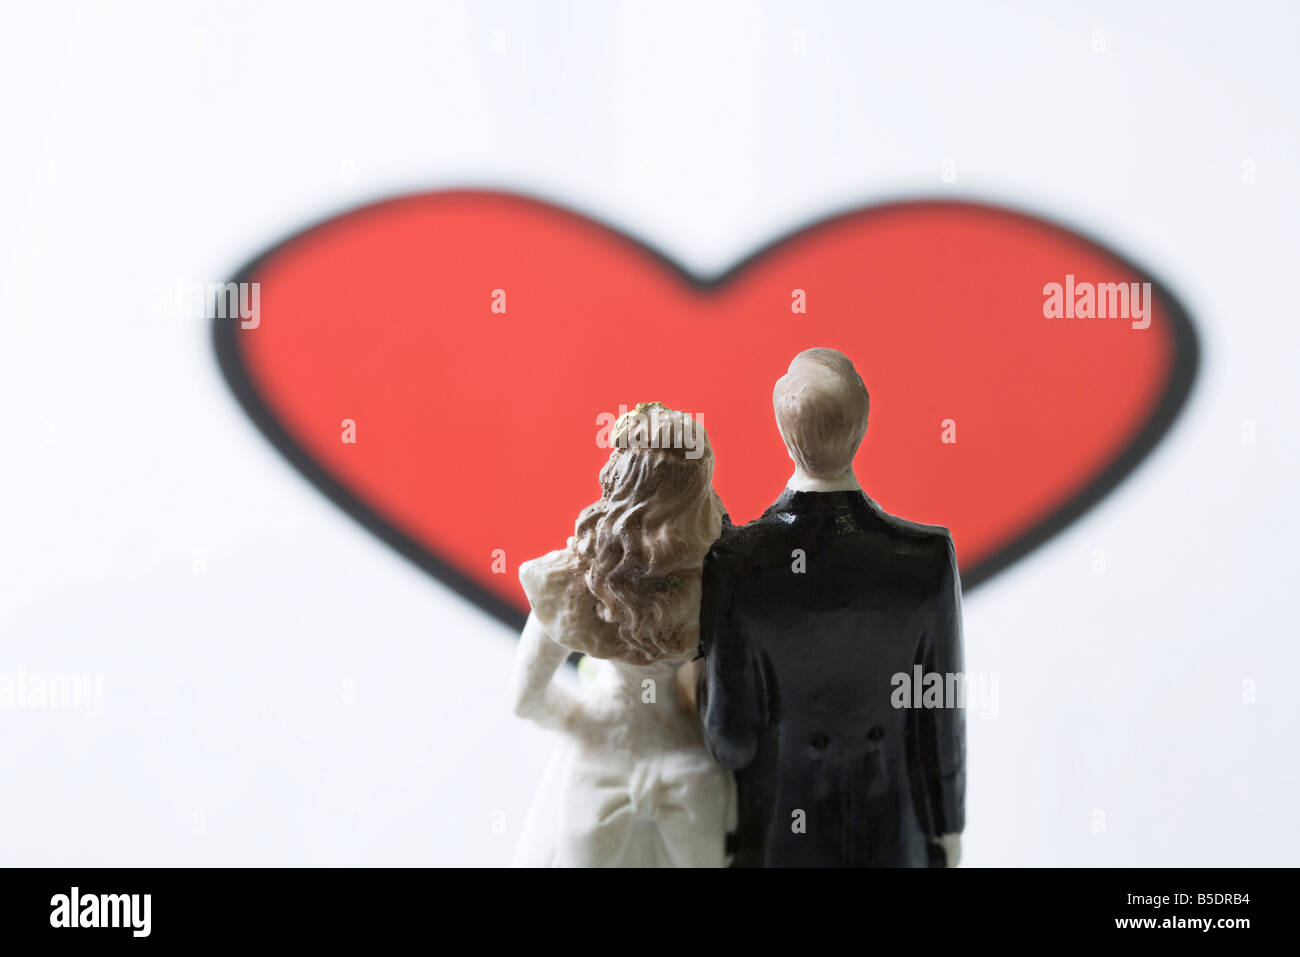 Miniature bride and groom standing in front of large heart graphic - Stock Image